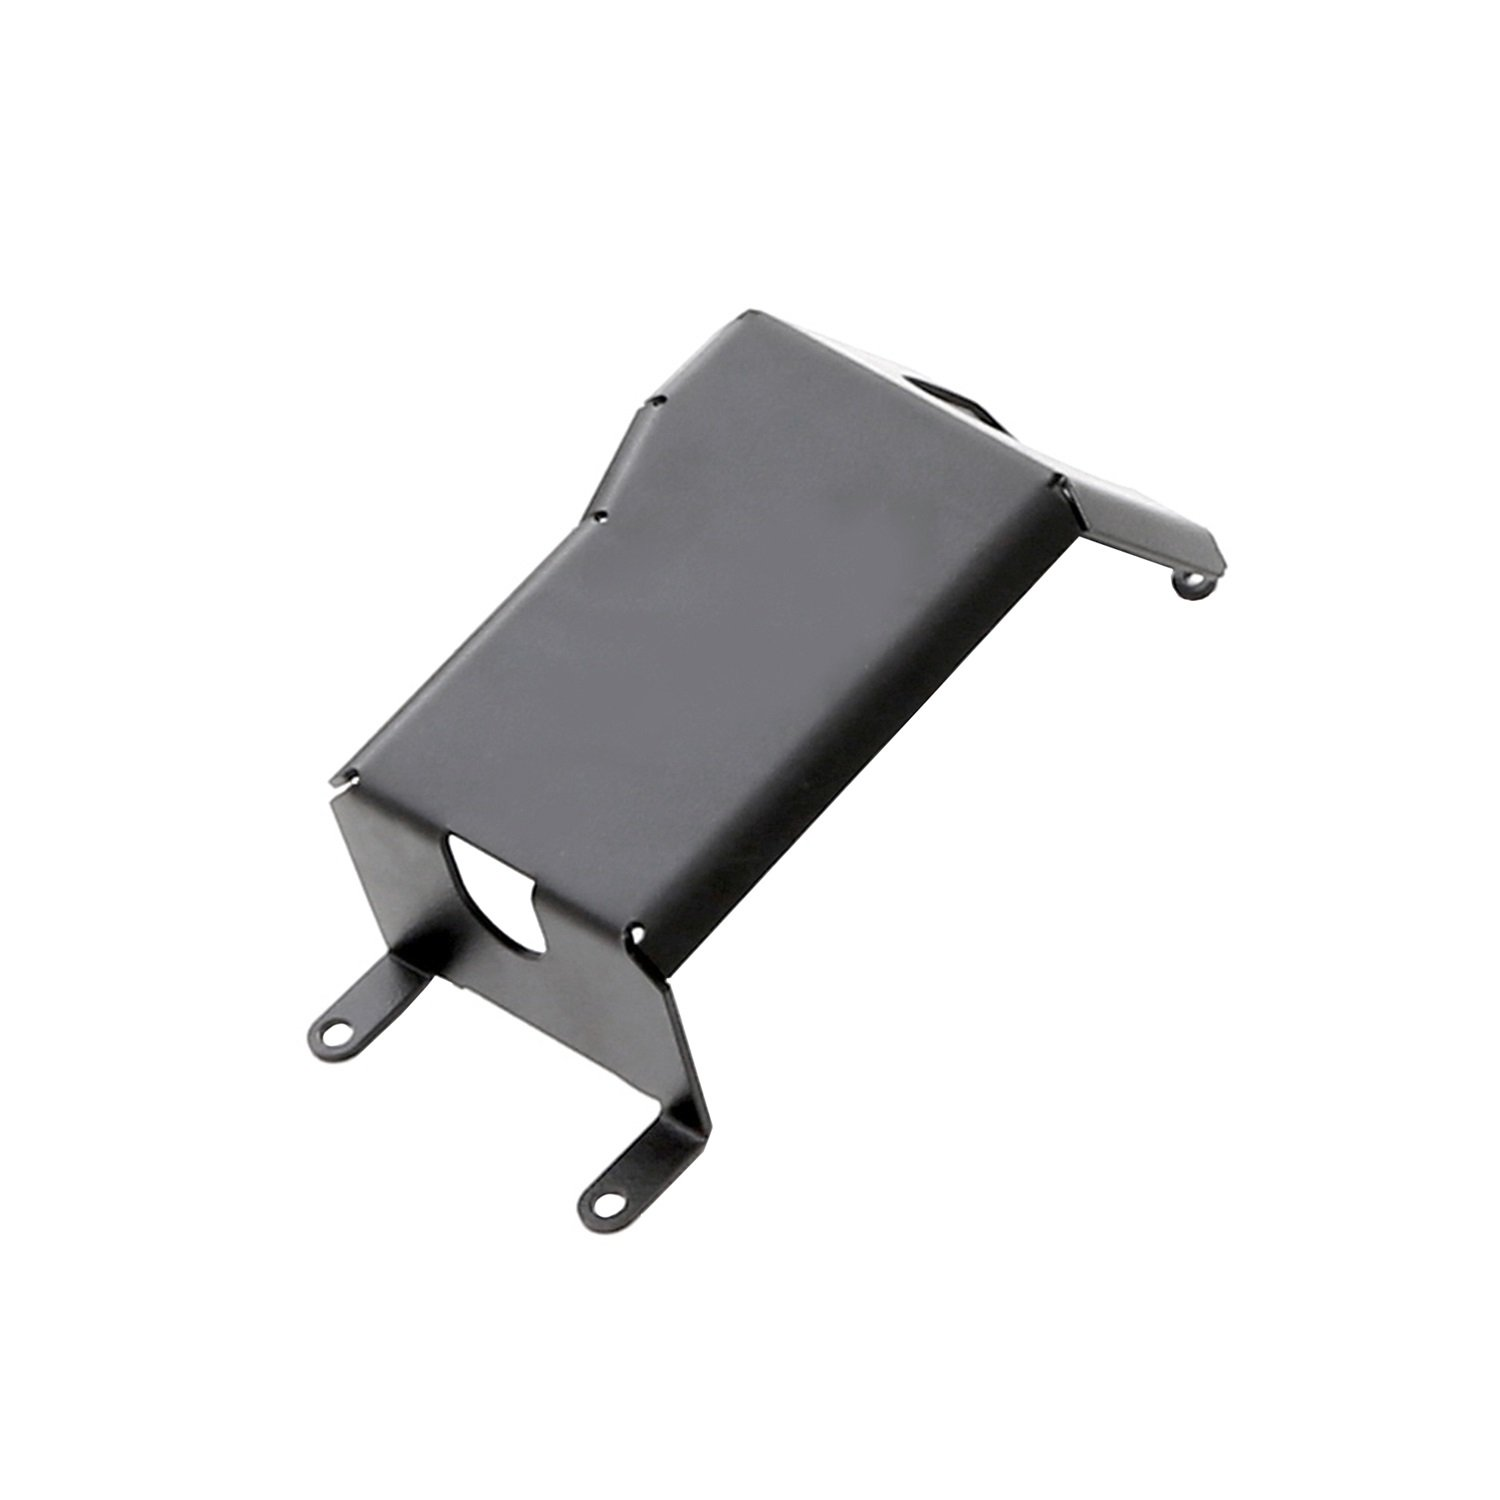 Rubicon Express REA1010 Skid Plate